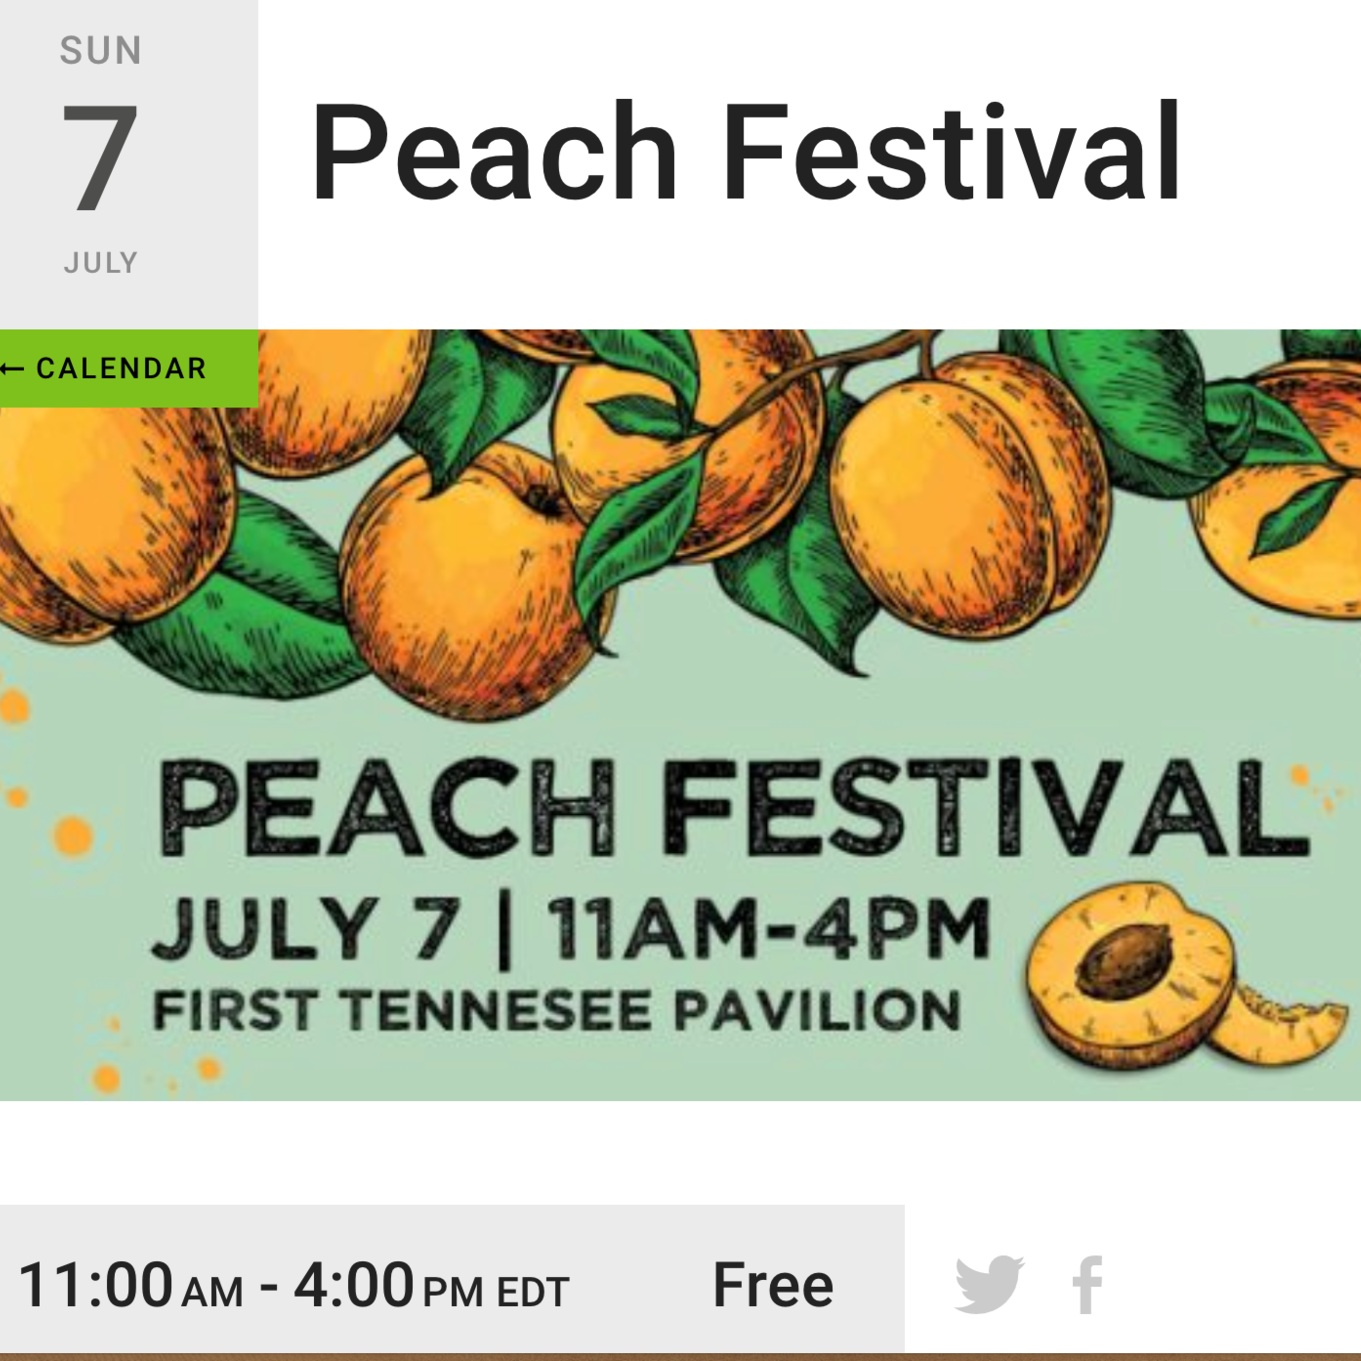 June 7th - Get your peach fix and come see us feeling peachy about our new line of jewels! See you there!